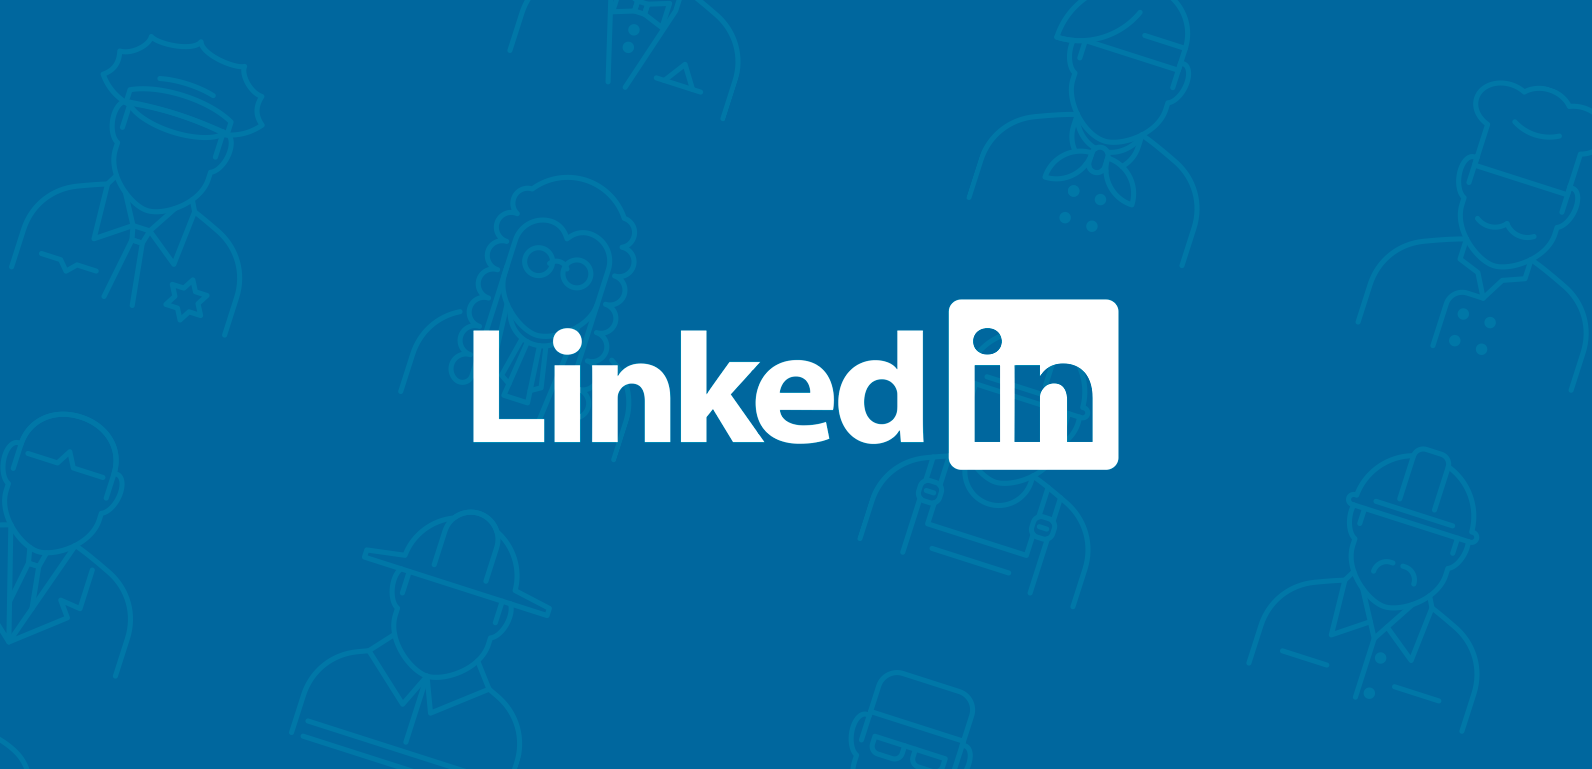 10 strategies for using LinkedIn for masterful content marketing